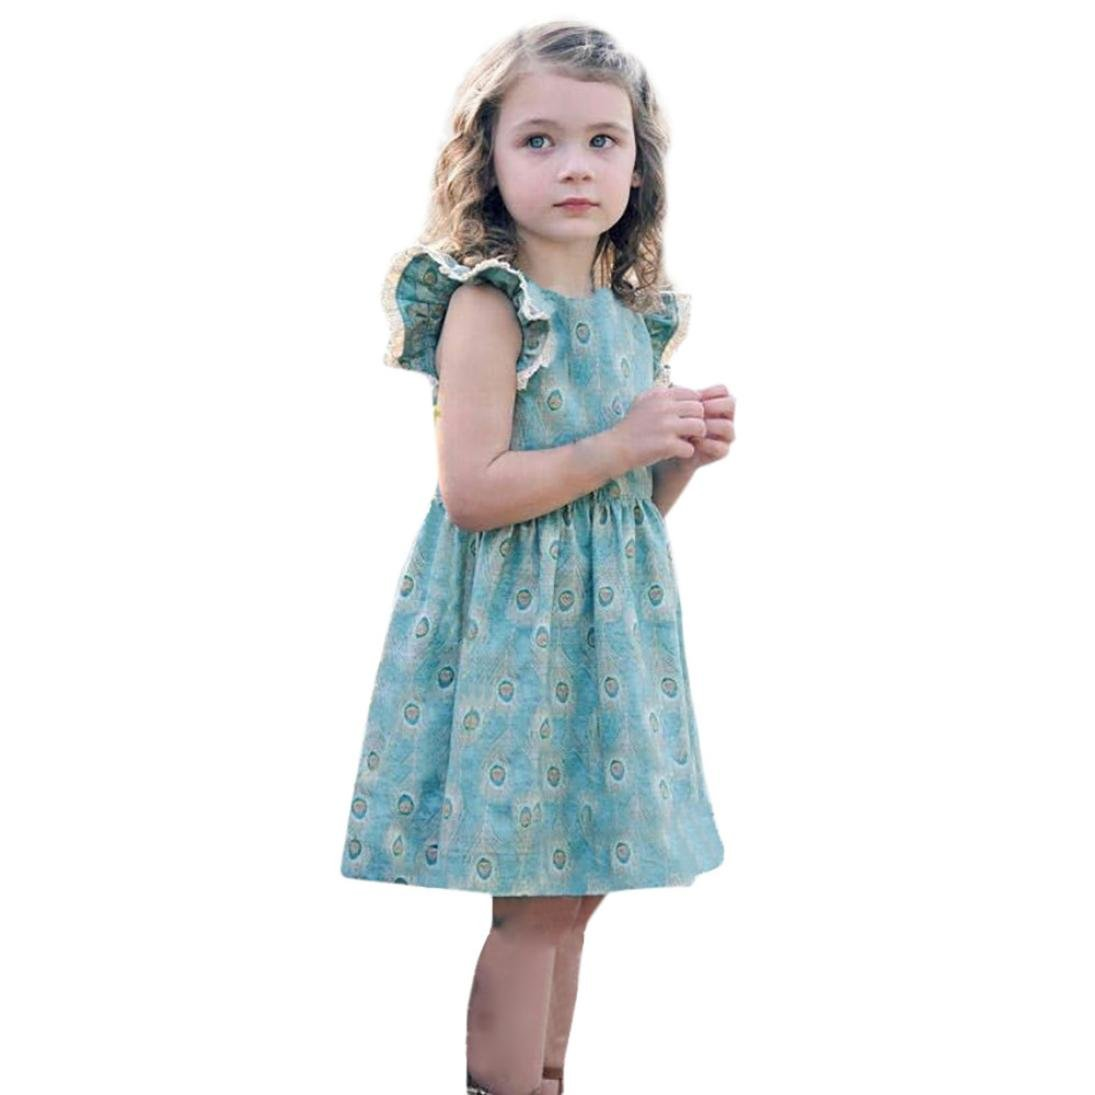 f7ed272cfd Amazon.com: TiTCool Little Girls Pretty Dress Peacock Feather Print Ruffles  Sleeve Sundress Size 1-6 Years Old: Clothing